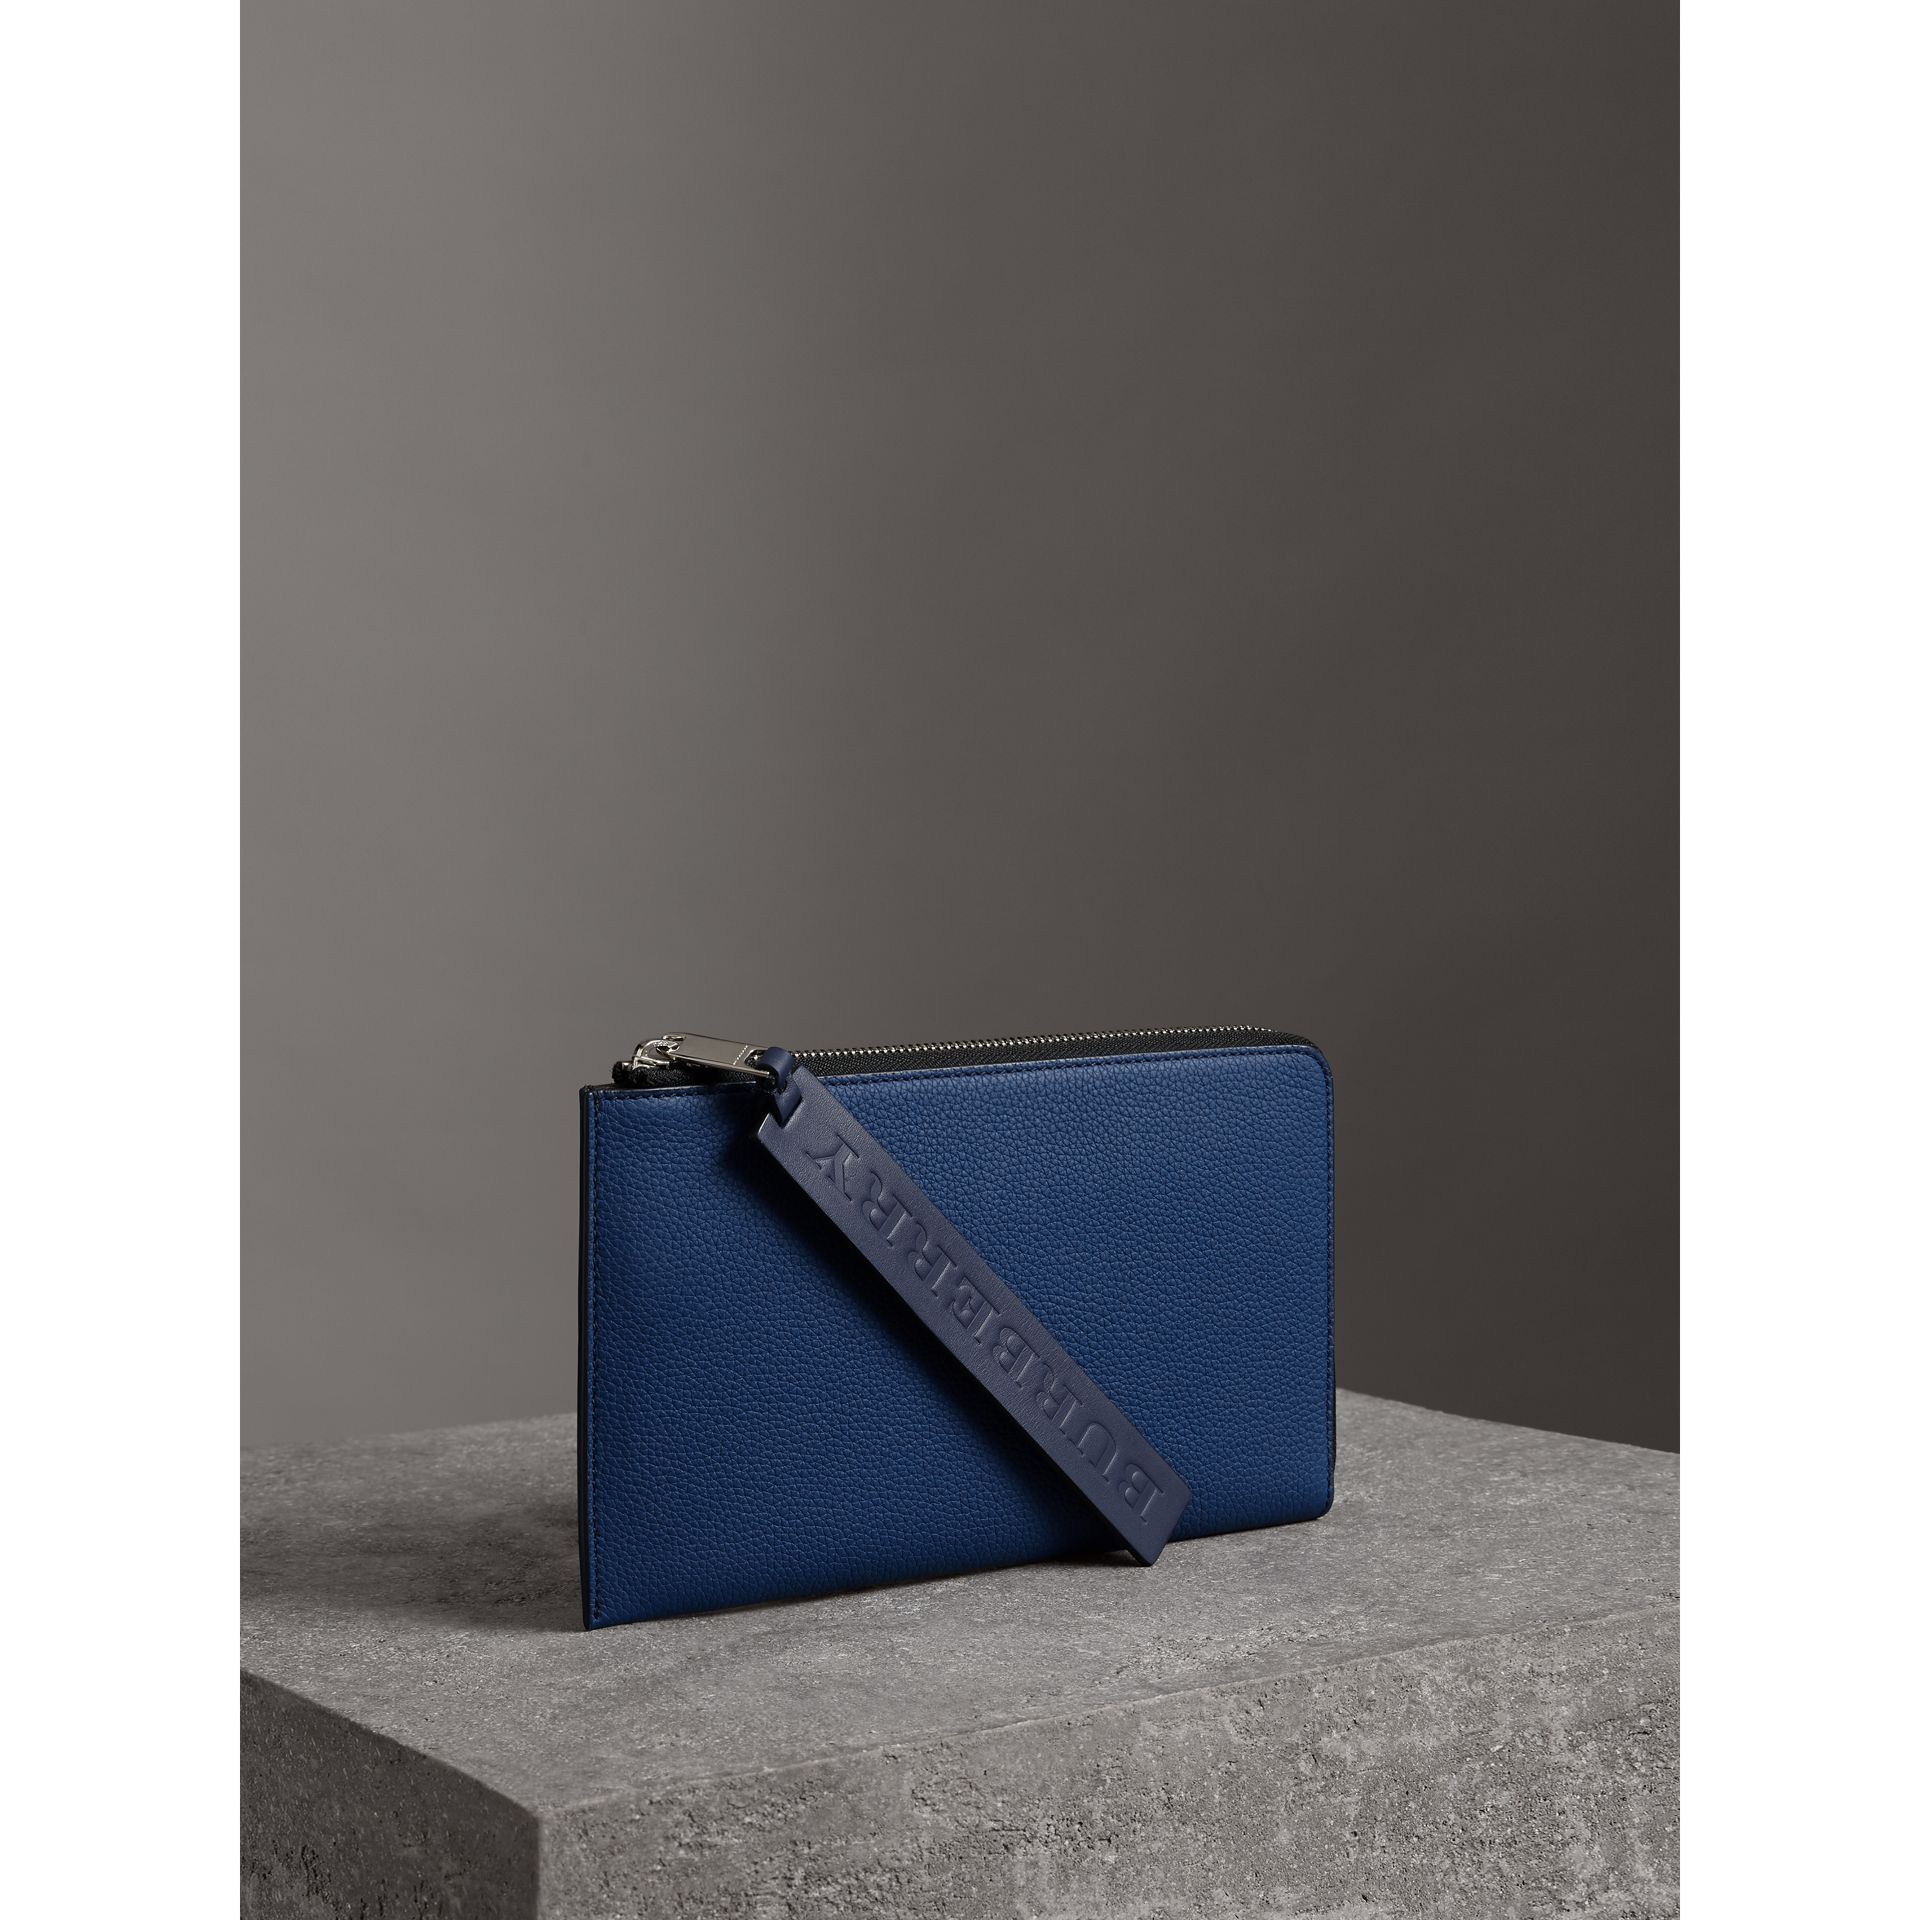 Two-tone Grainy Leather Travel Wallet in Bright Ultramarine - Men | Burberry United Kingdom - gallery image 5